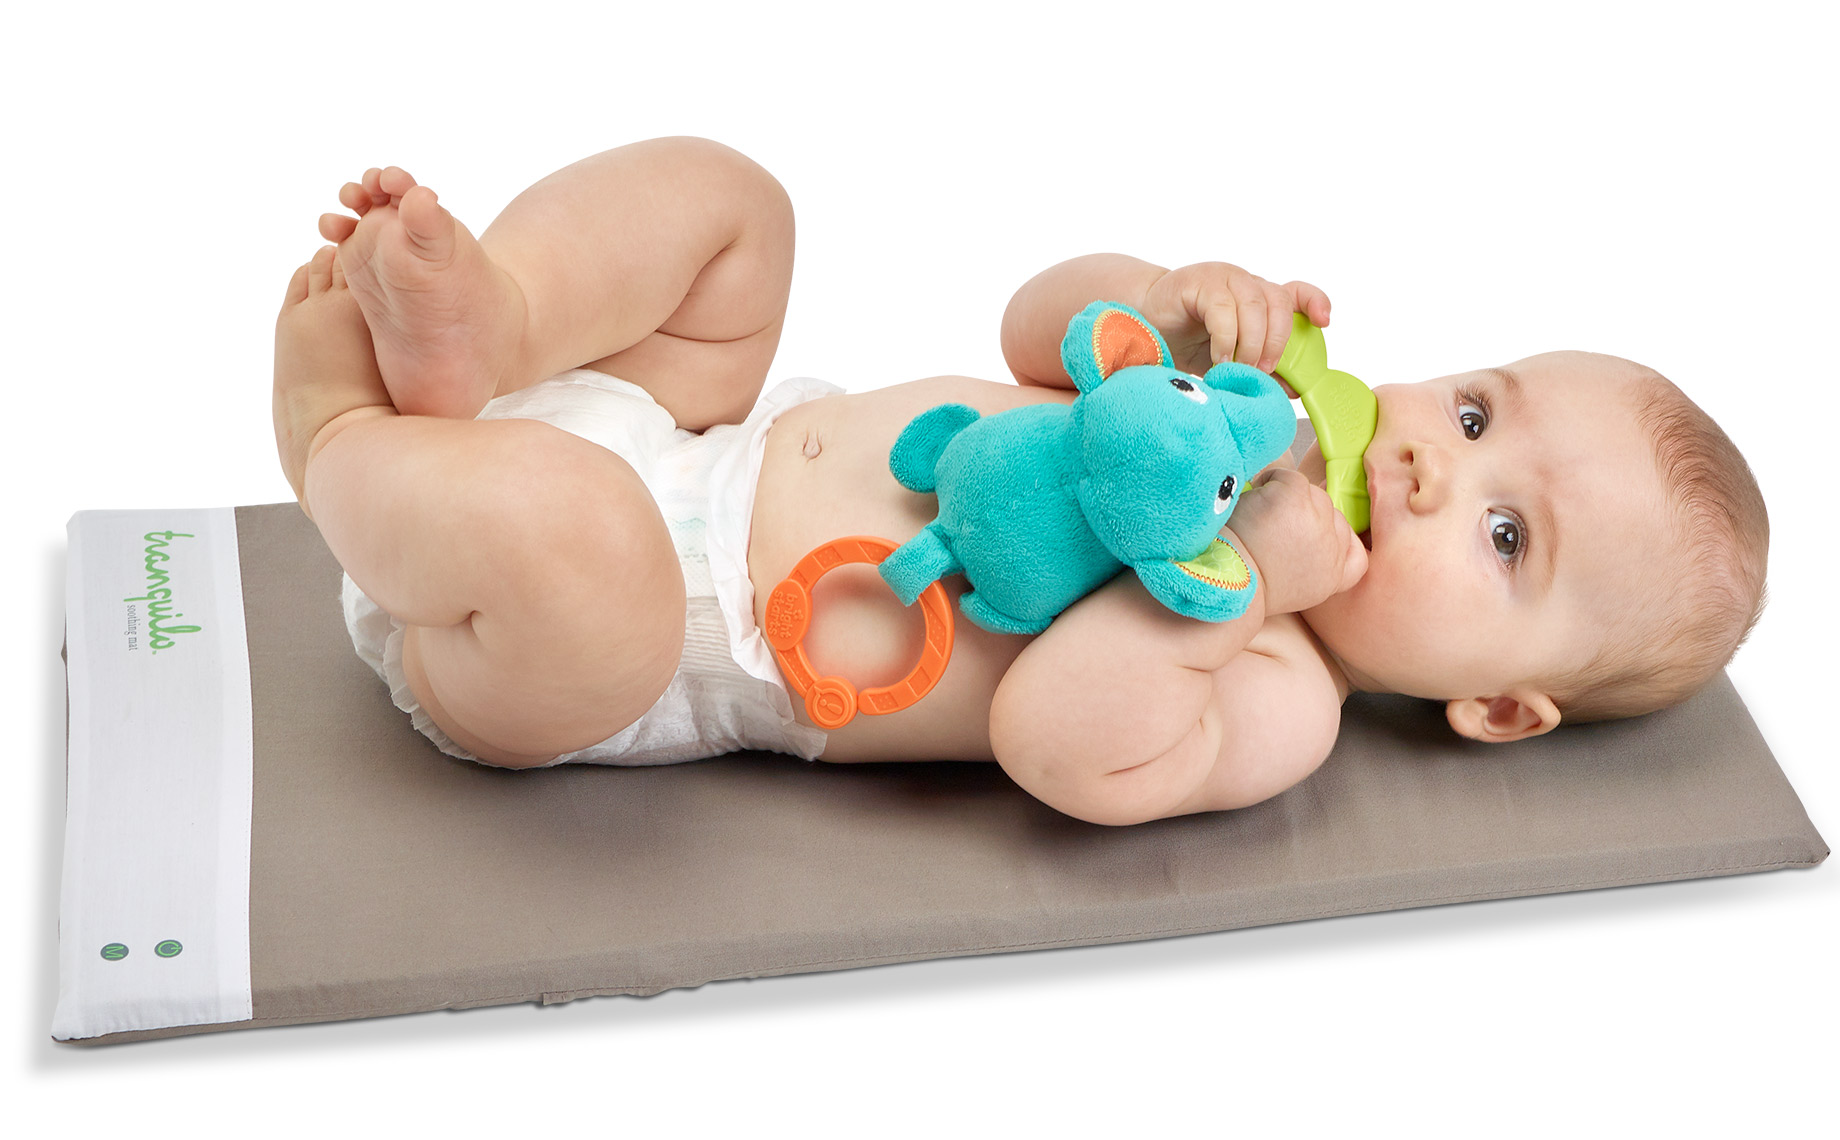 Baby-playing-on-mat-33323-F